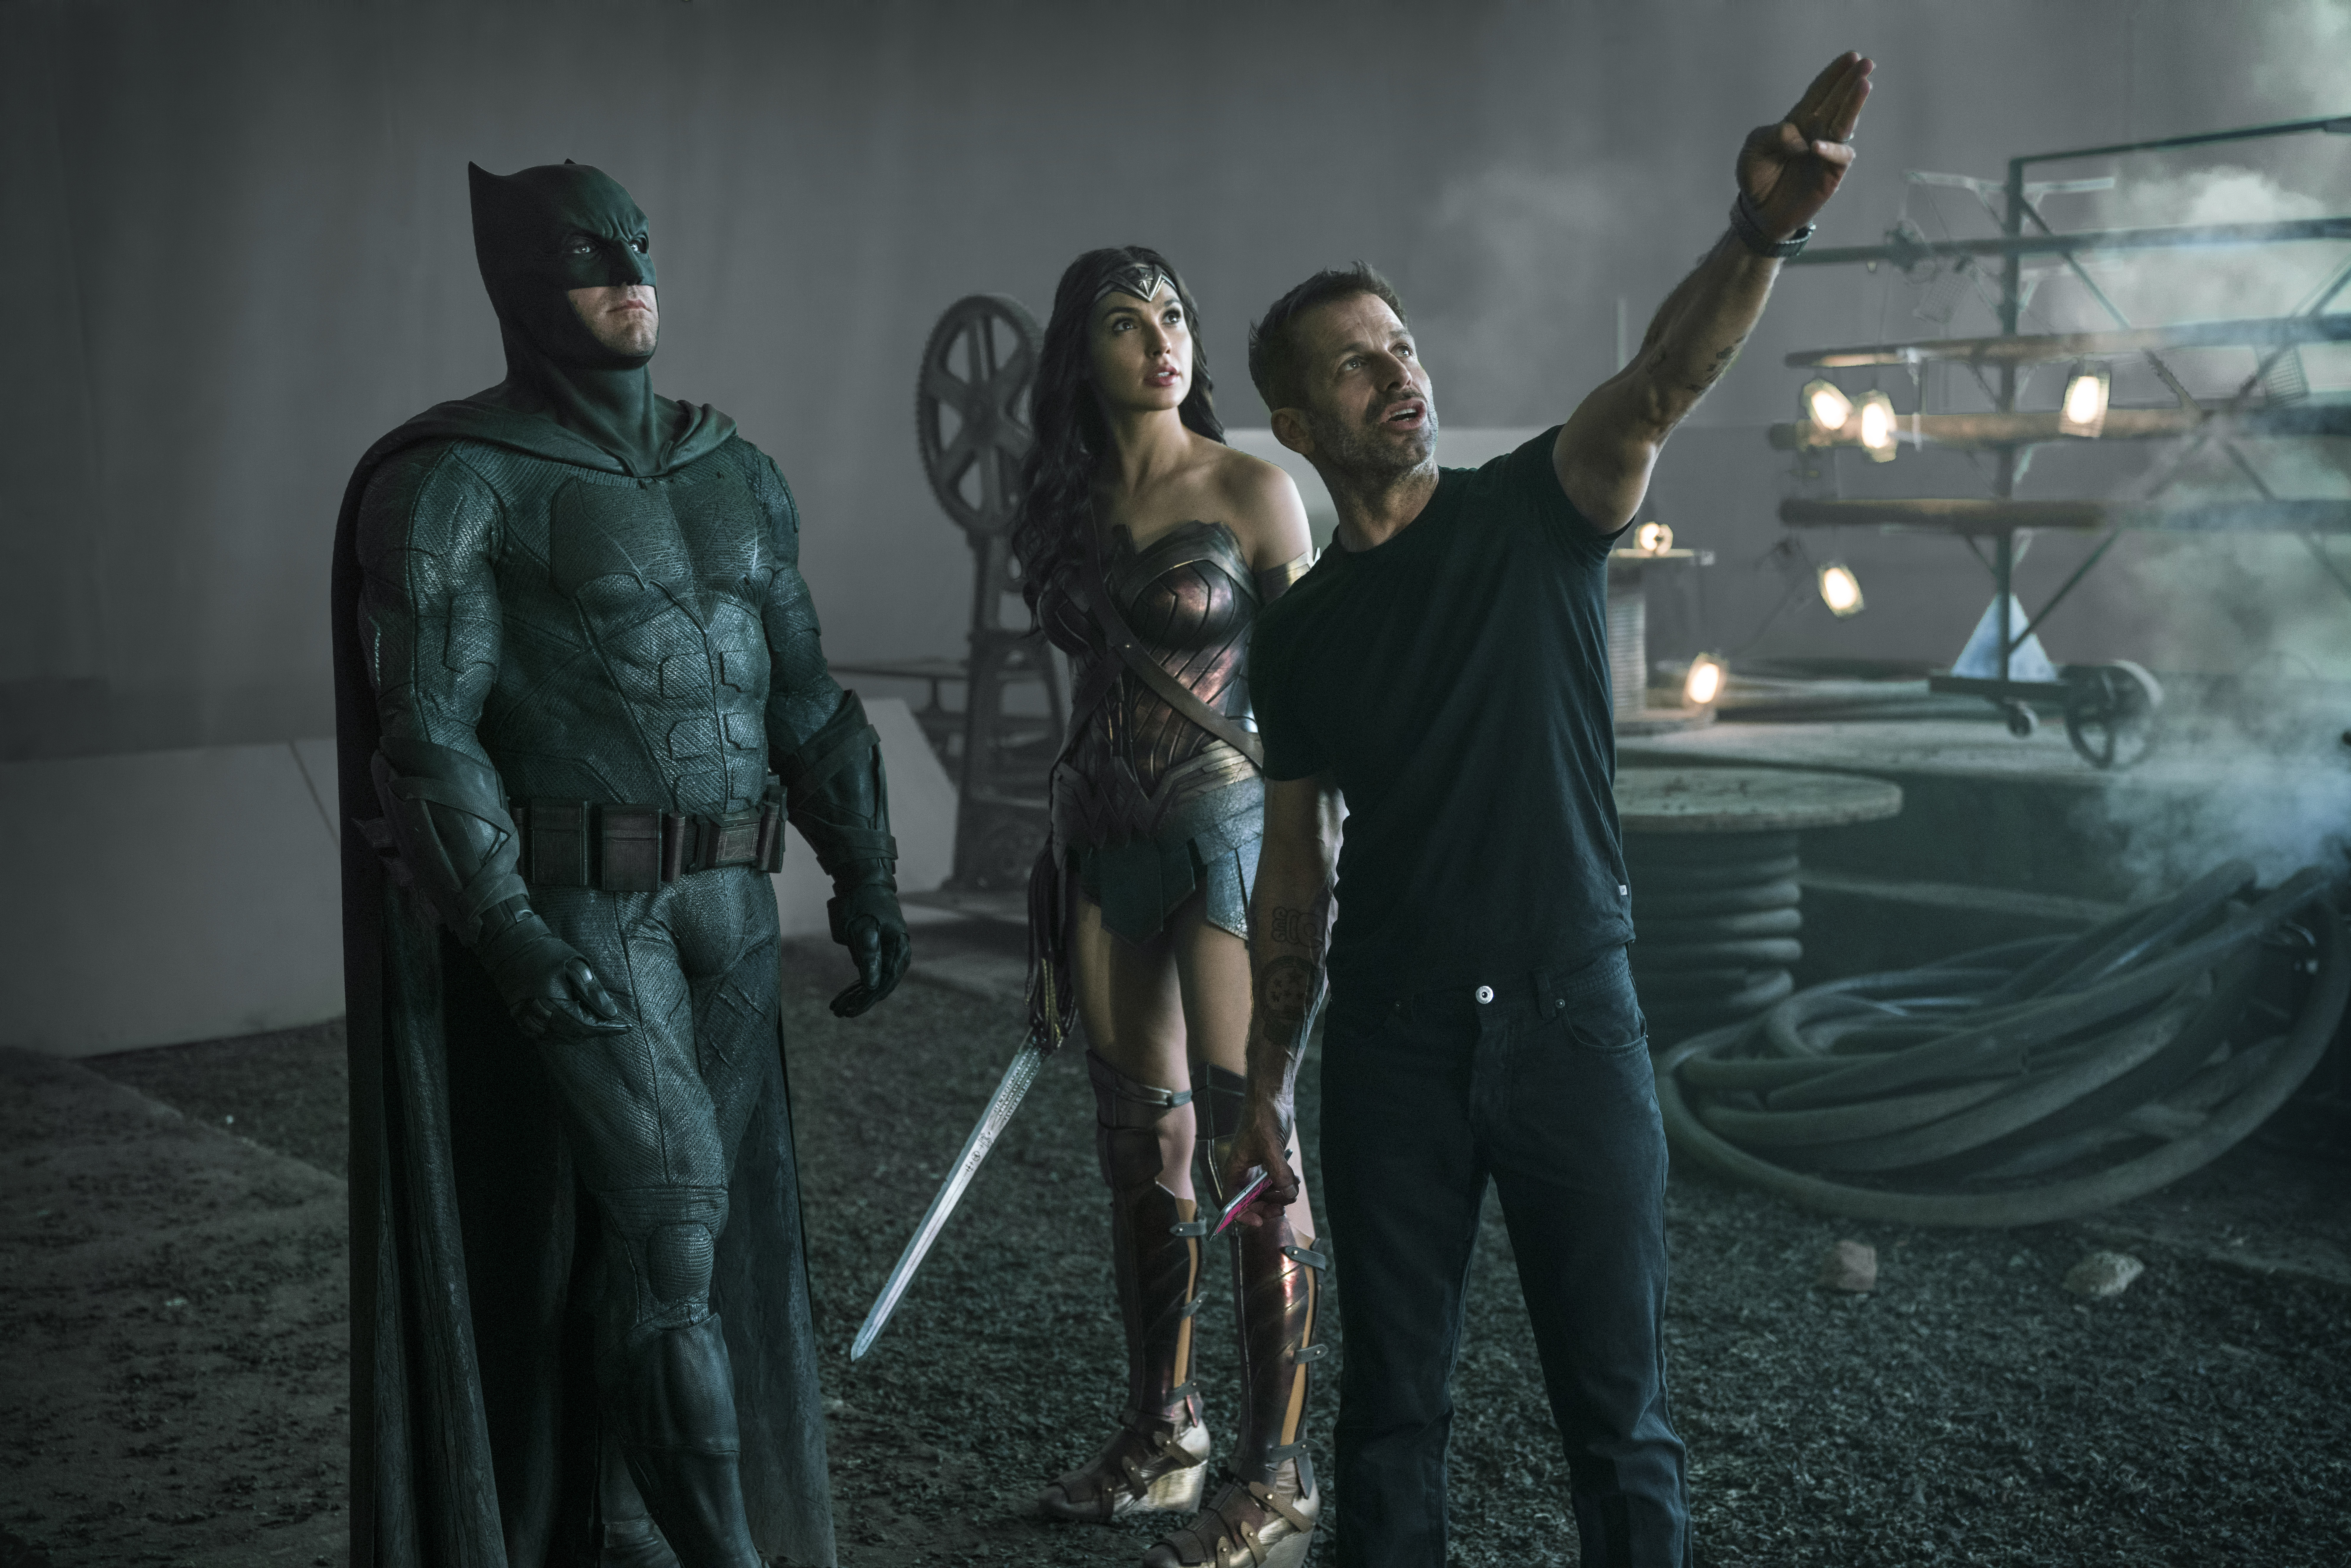 Batman, Wonder Woman, and Zack Snyder standing on the set of Justice League